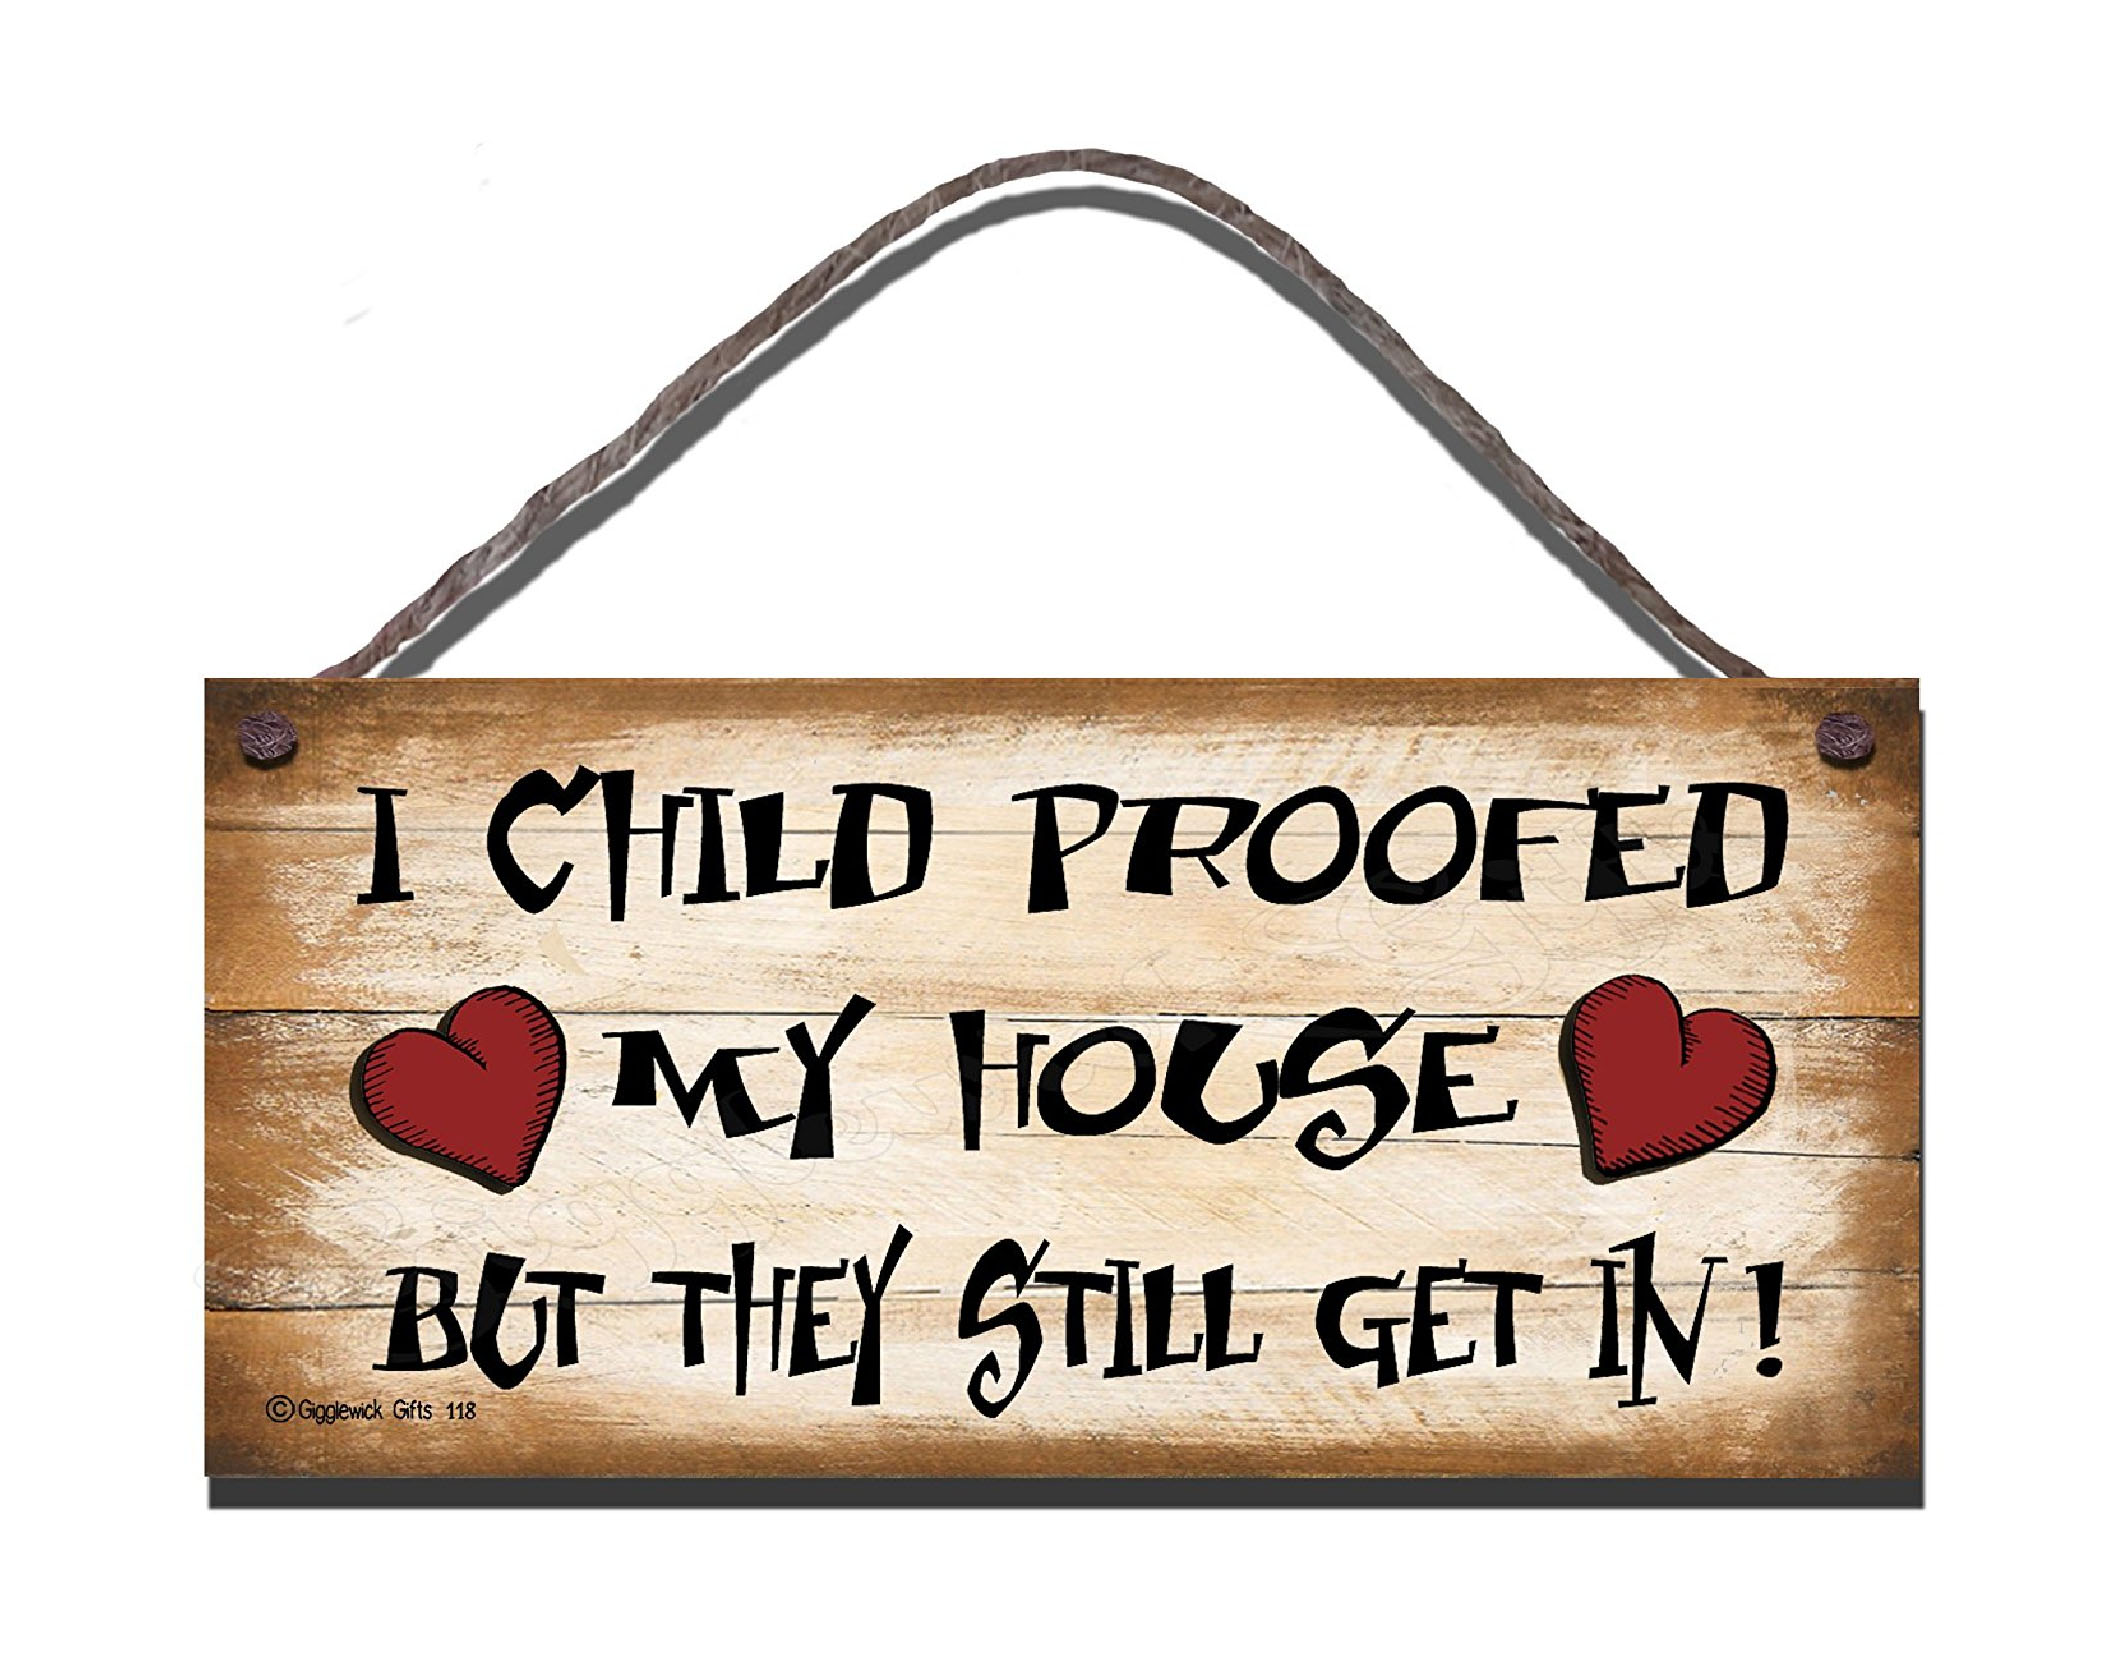 CHILDPROOFED HOUSE S118